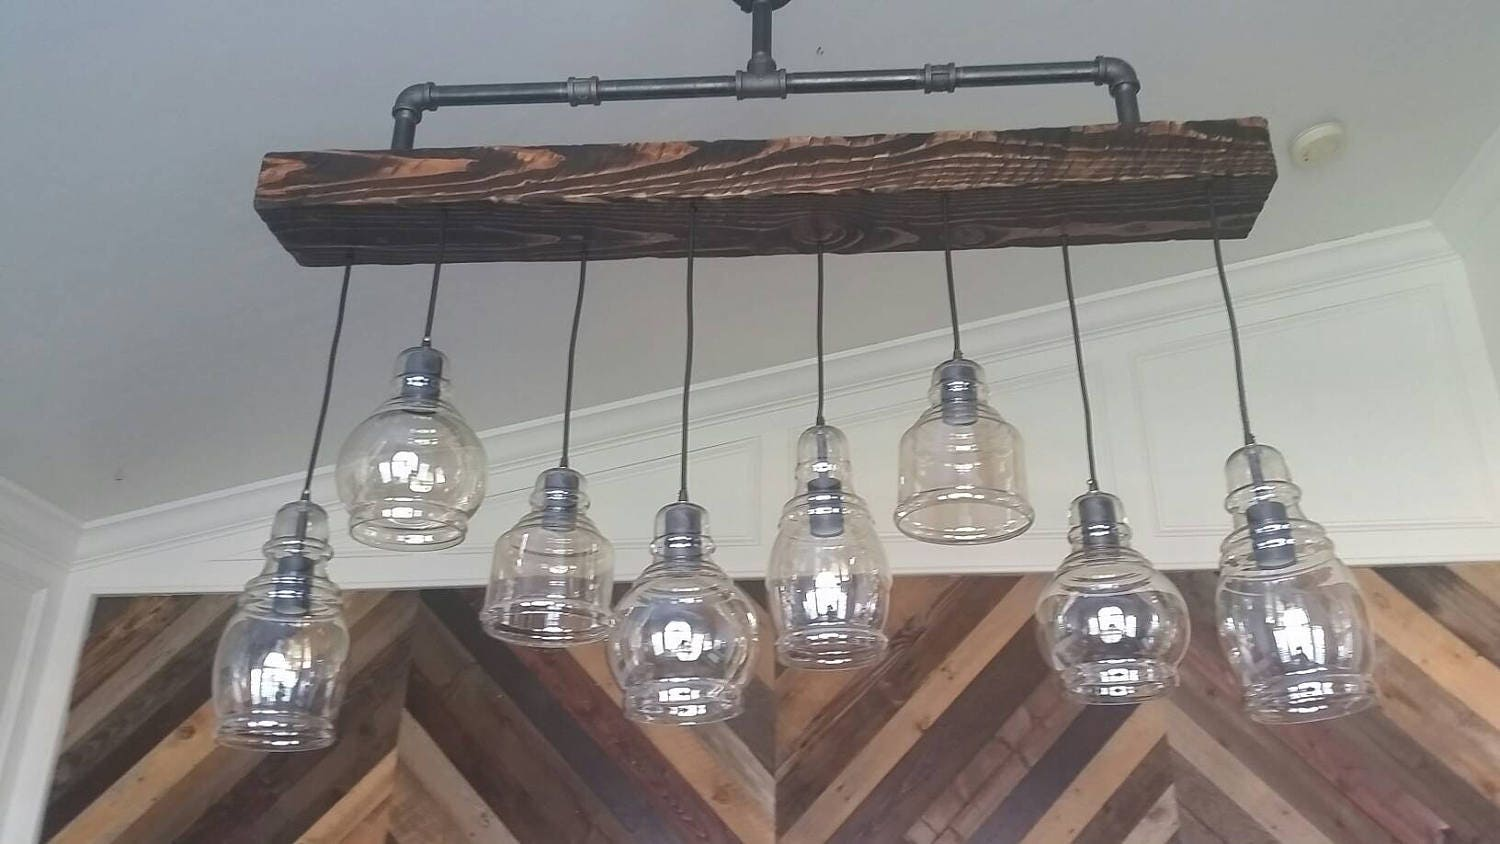 Rustic Wood Beam and Steel Pipe Chandelier with Cognac Glass Pendants